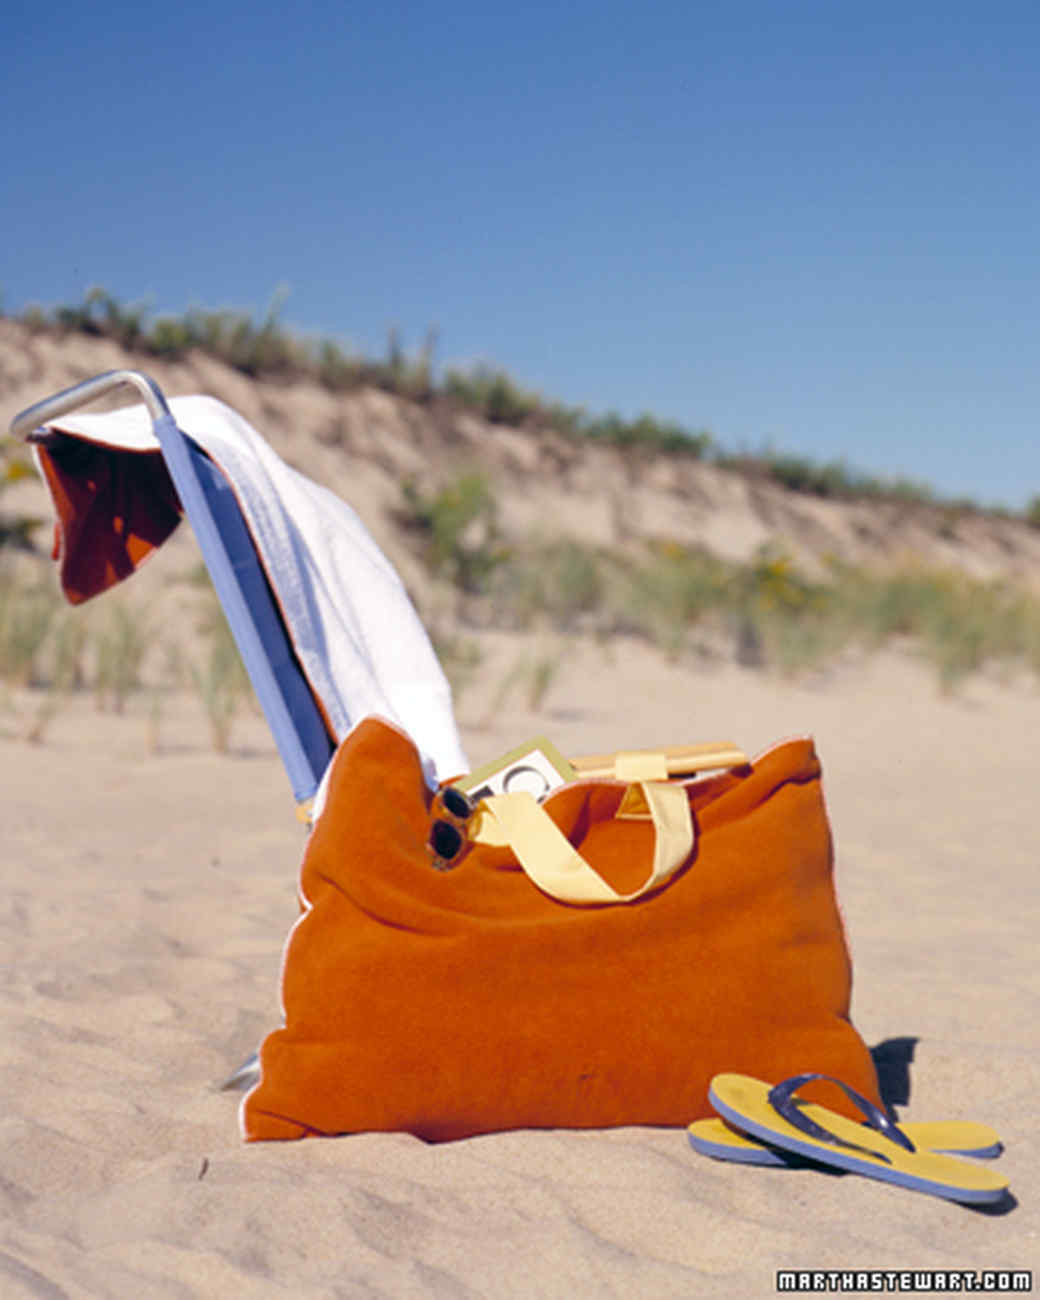 gt02julmsl_beachbag01.jpg